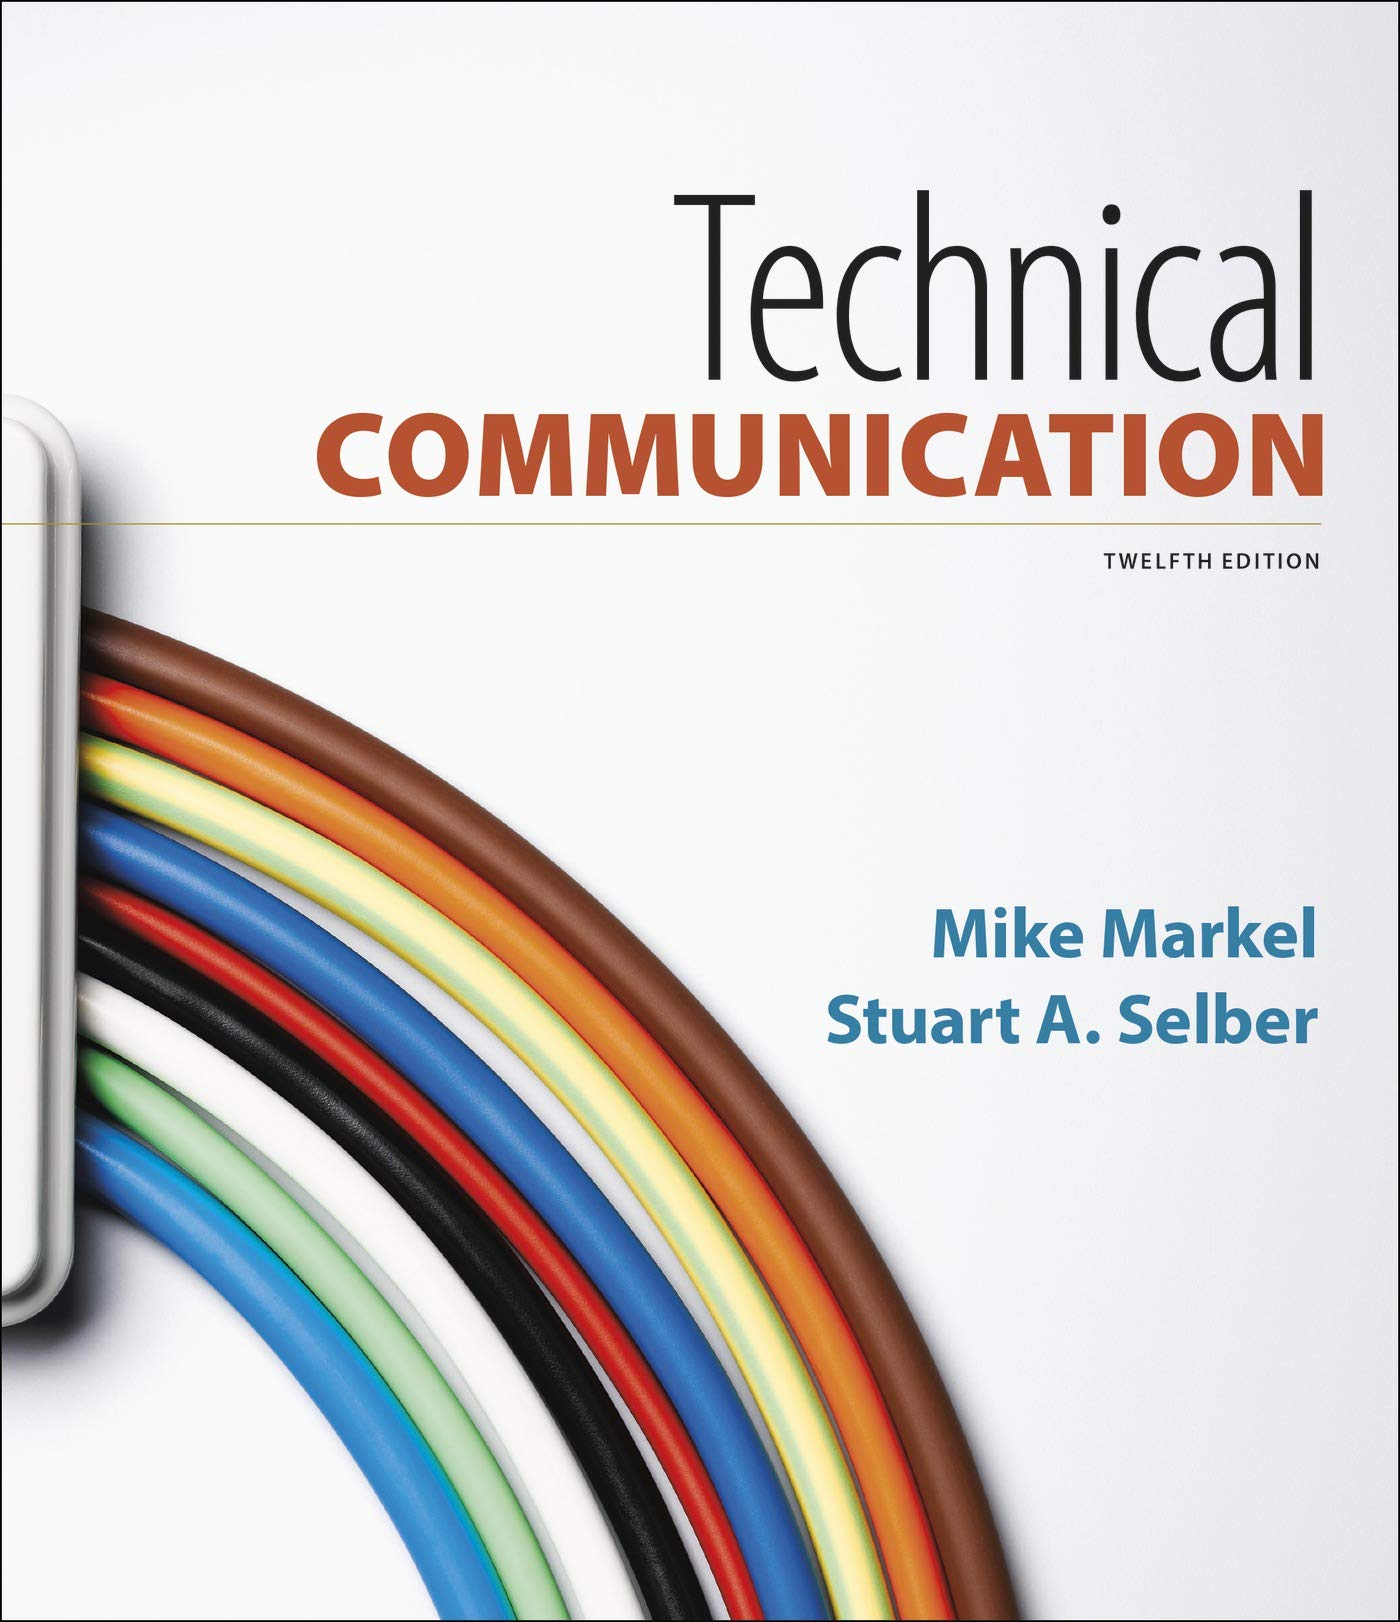 Technical Communication by Bedford/St. Martin's